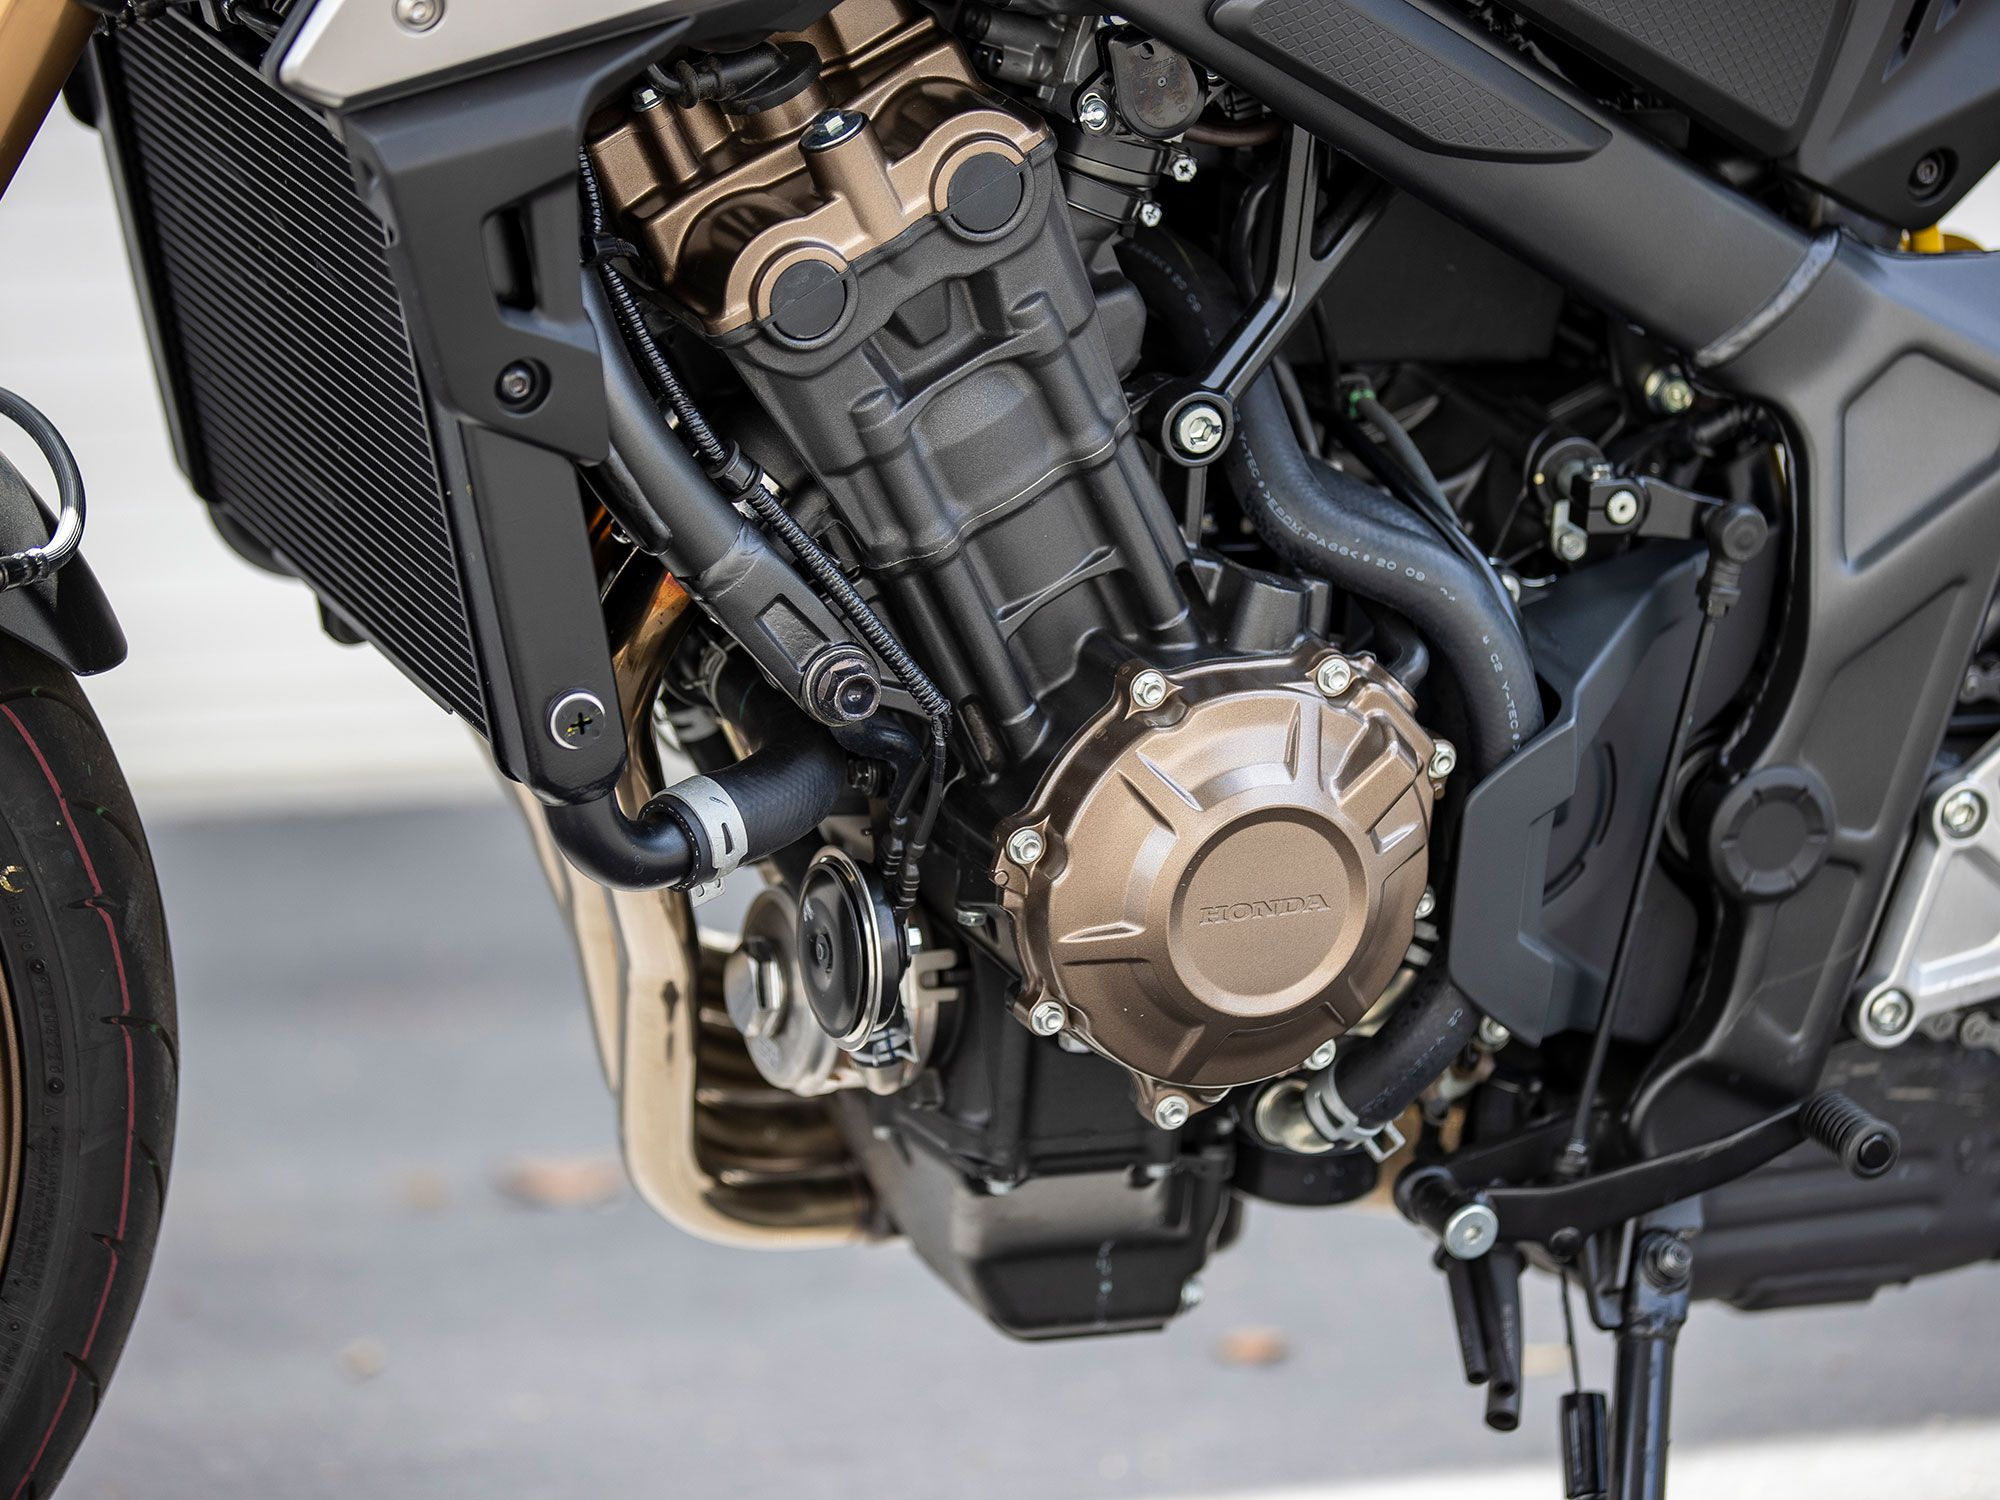 Powering the CB650R is a 649cc inline-four engine. While the bore measurement is identical to the competition-inspired CBR600RR, Honda increased the stroke to achieve the displacement.